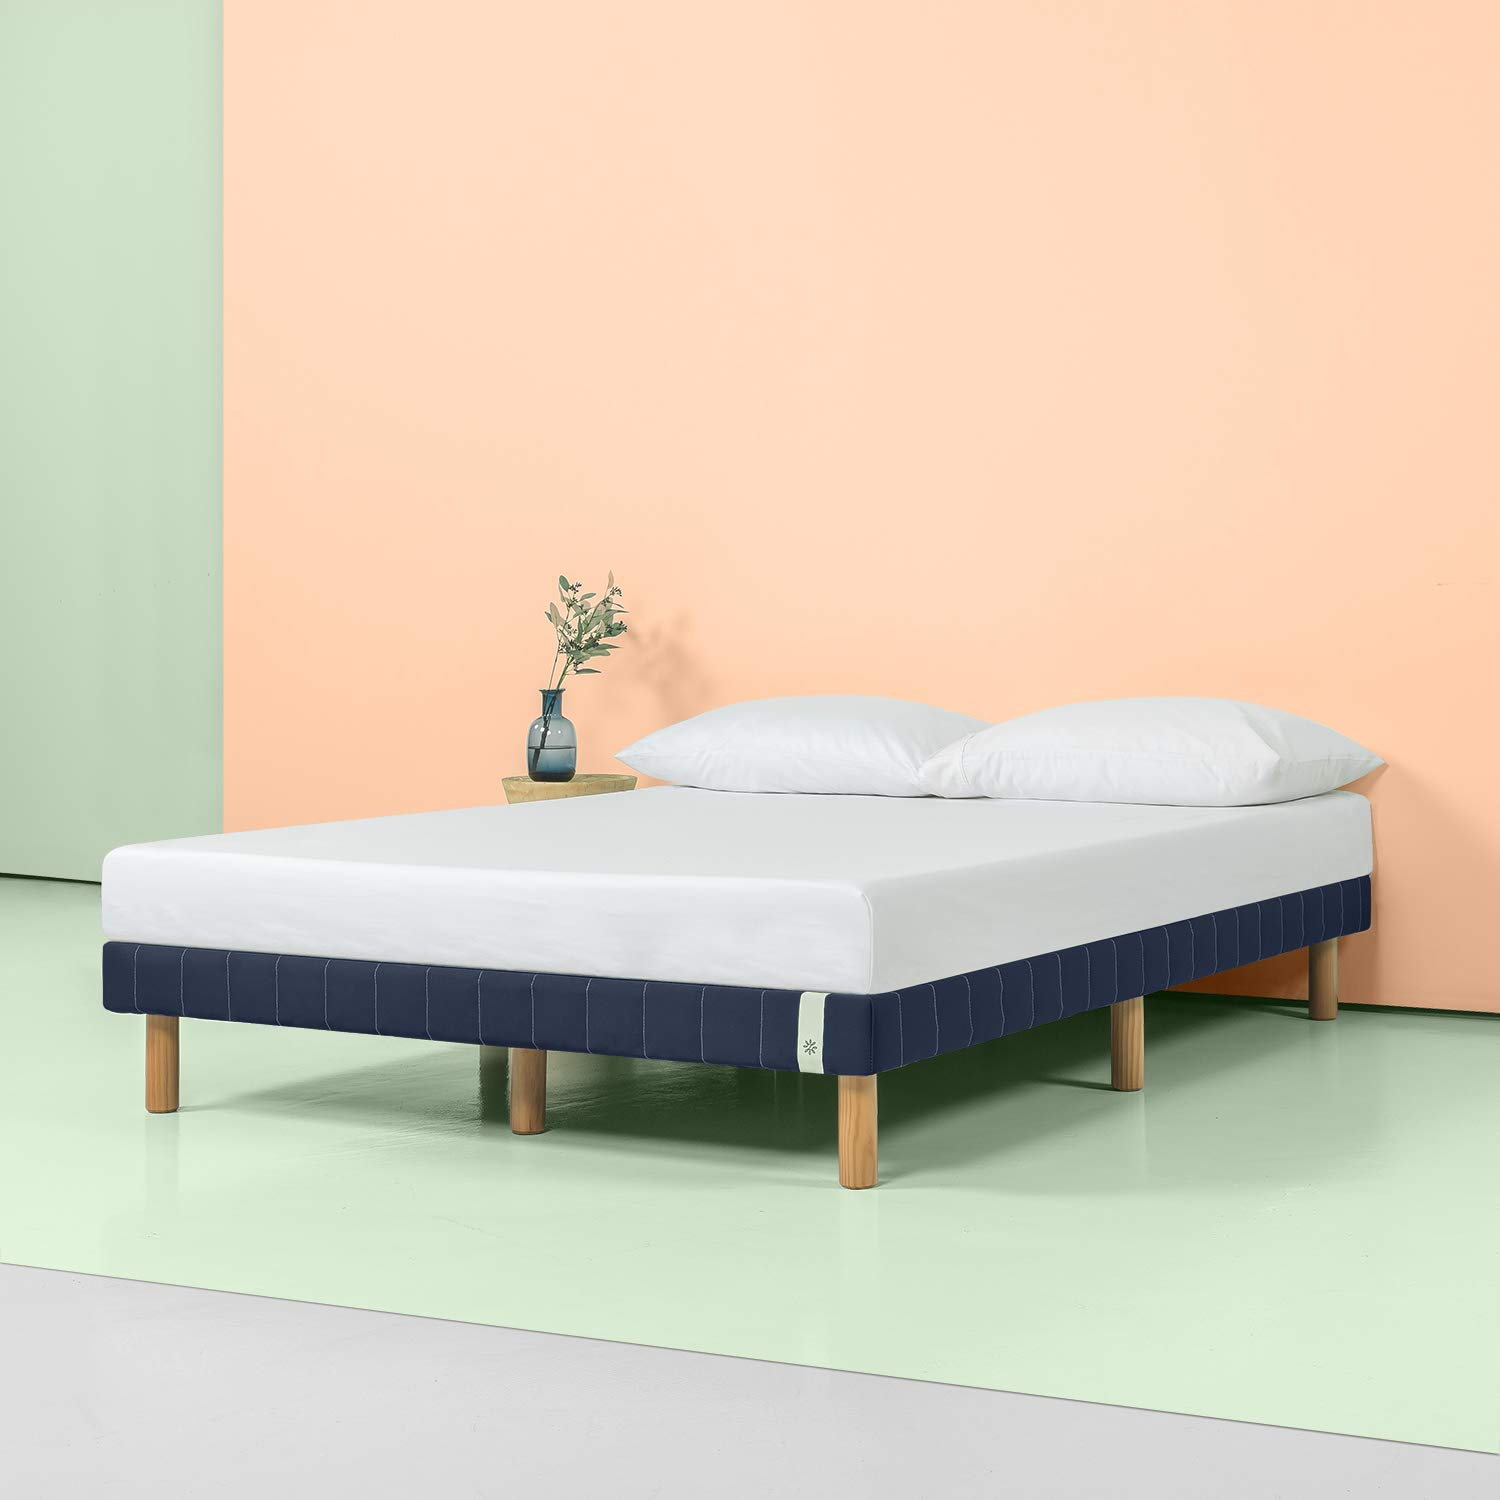 Zinus 11 Inch Quick Snap Standing Mattress Foundation/Low profile Platform Bed/No Box Spring needed, Navy, Twin XL